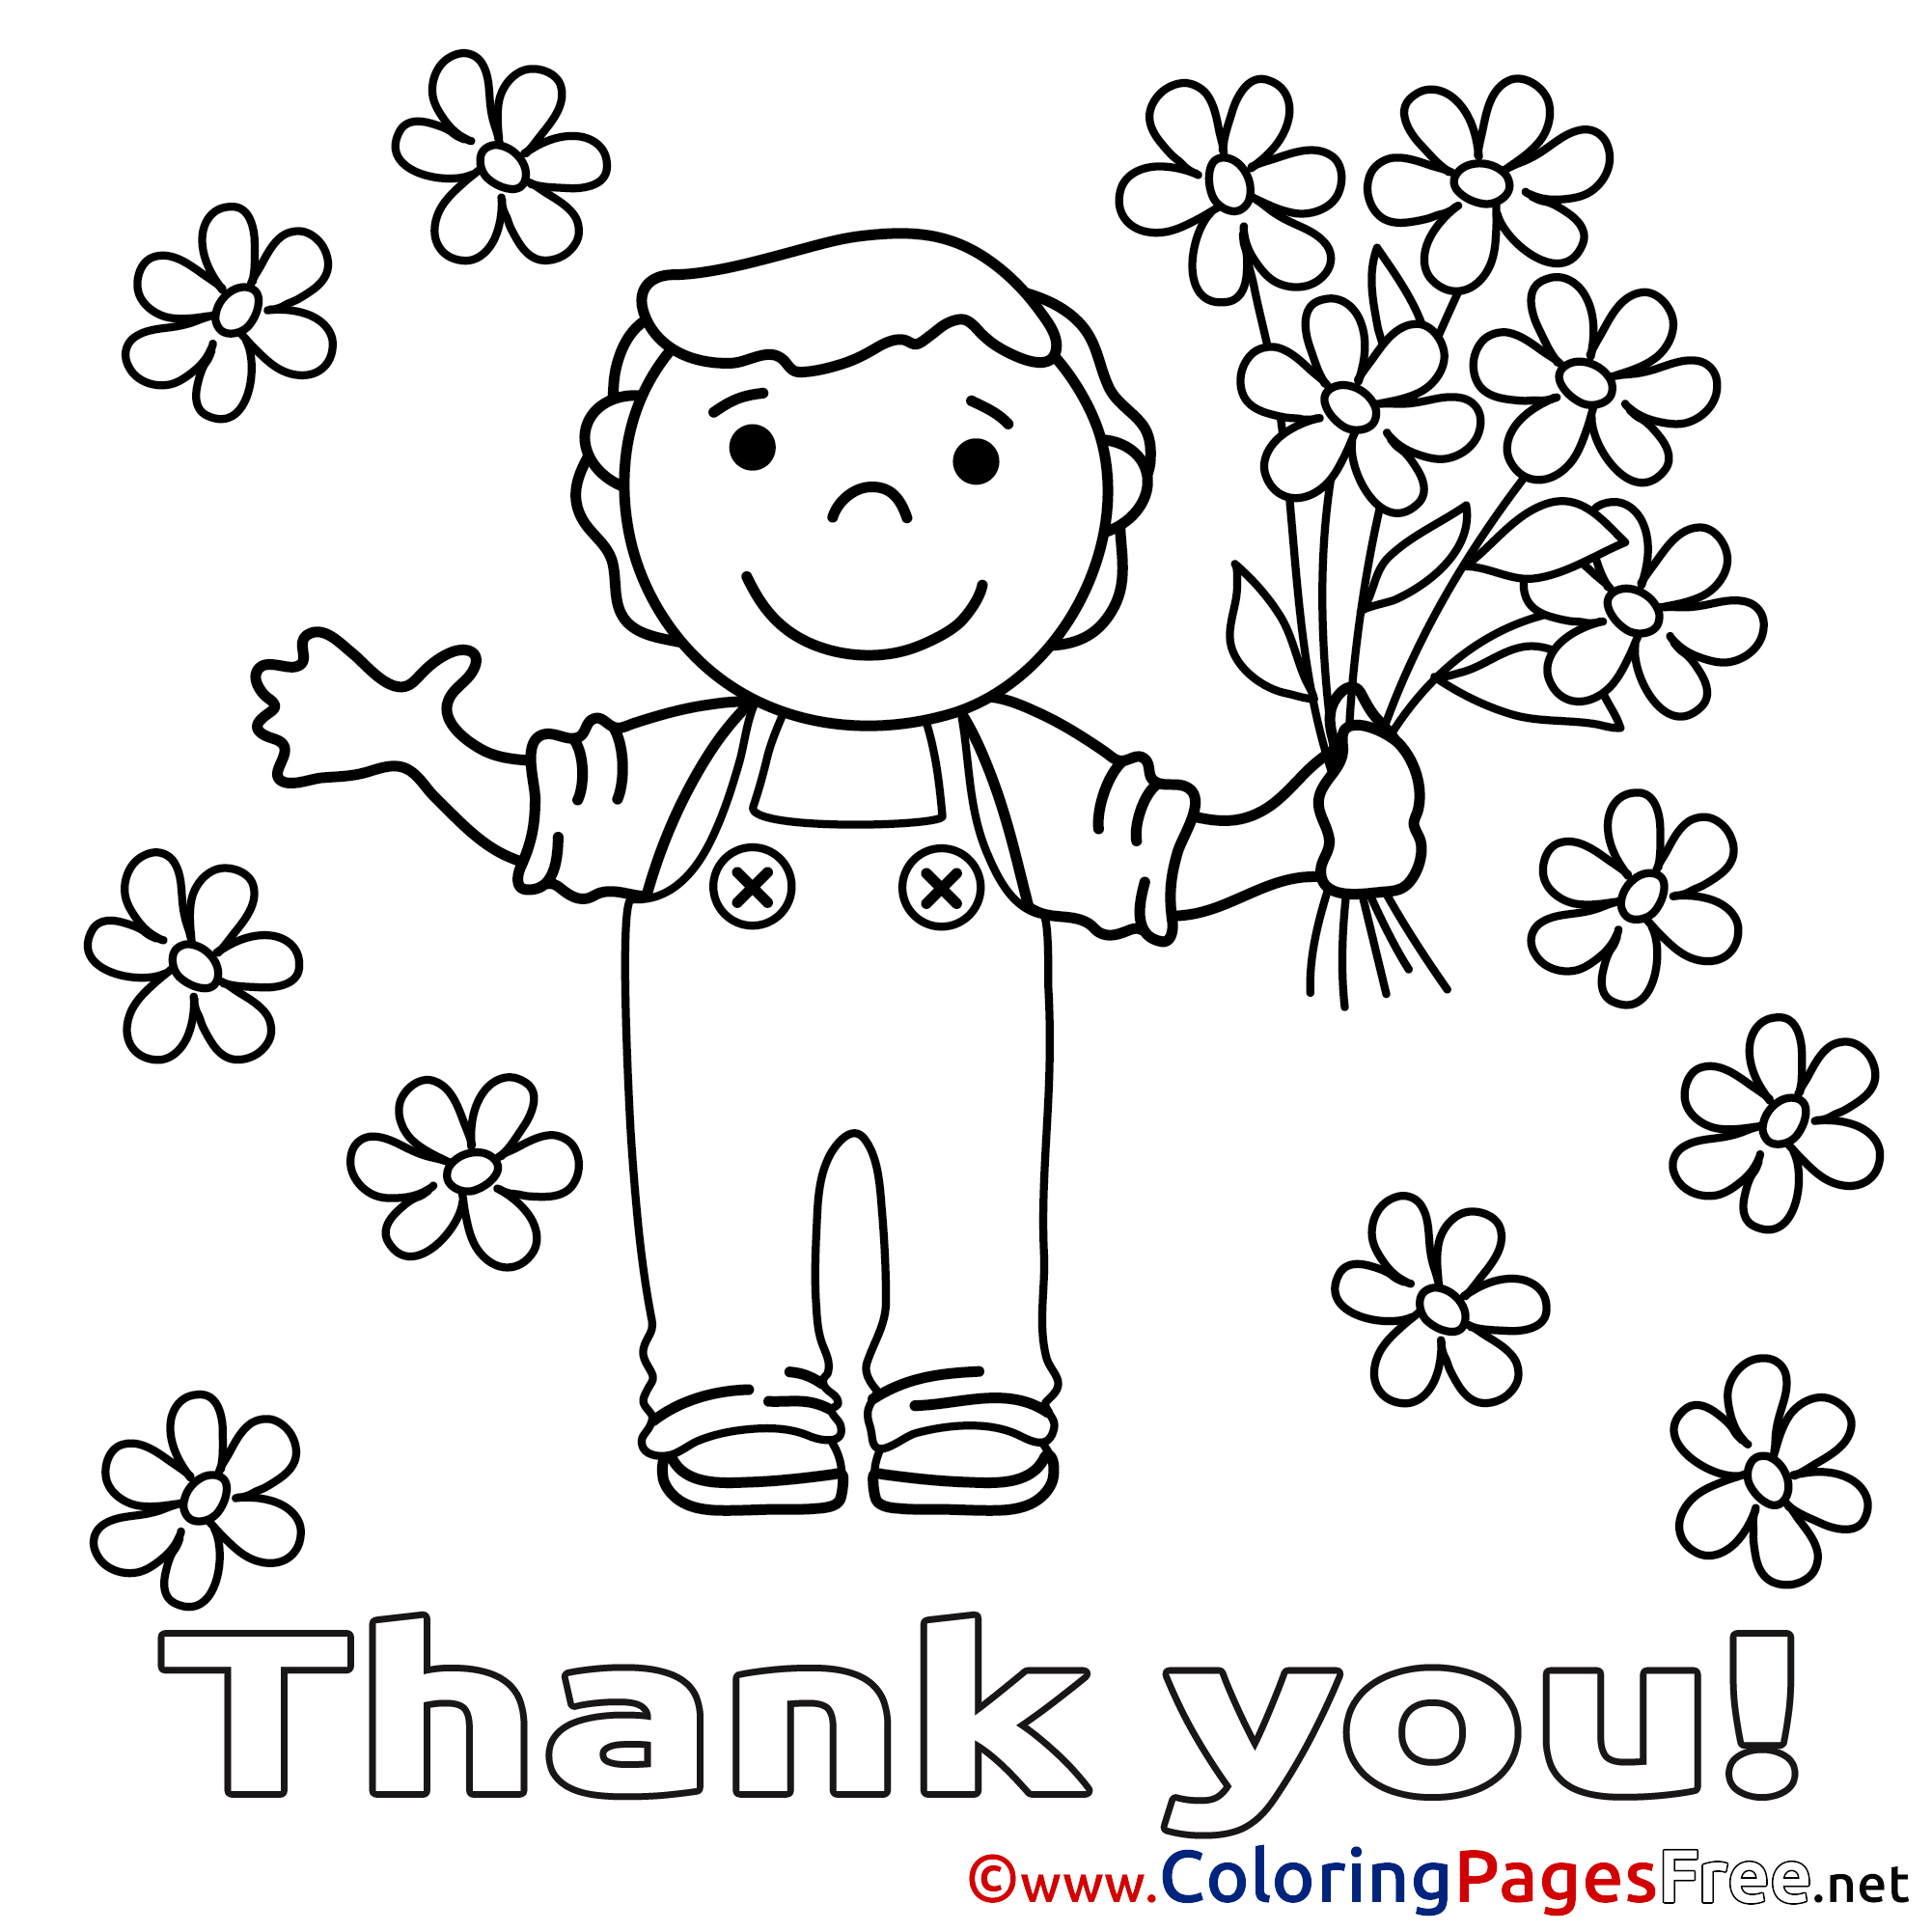 thank you coloring sheets free printable thank you coloring pages coloring pages coloring you thank sheets